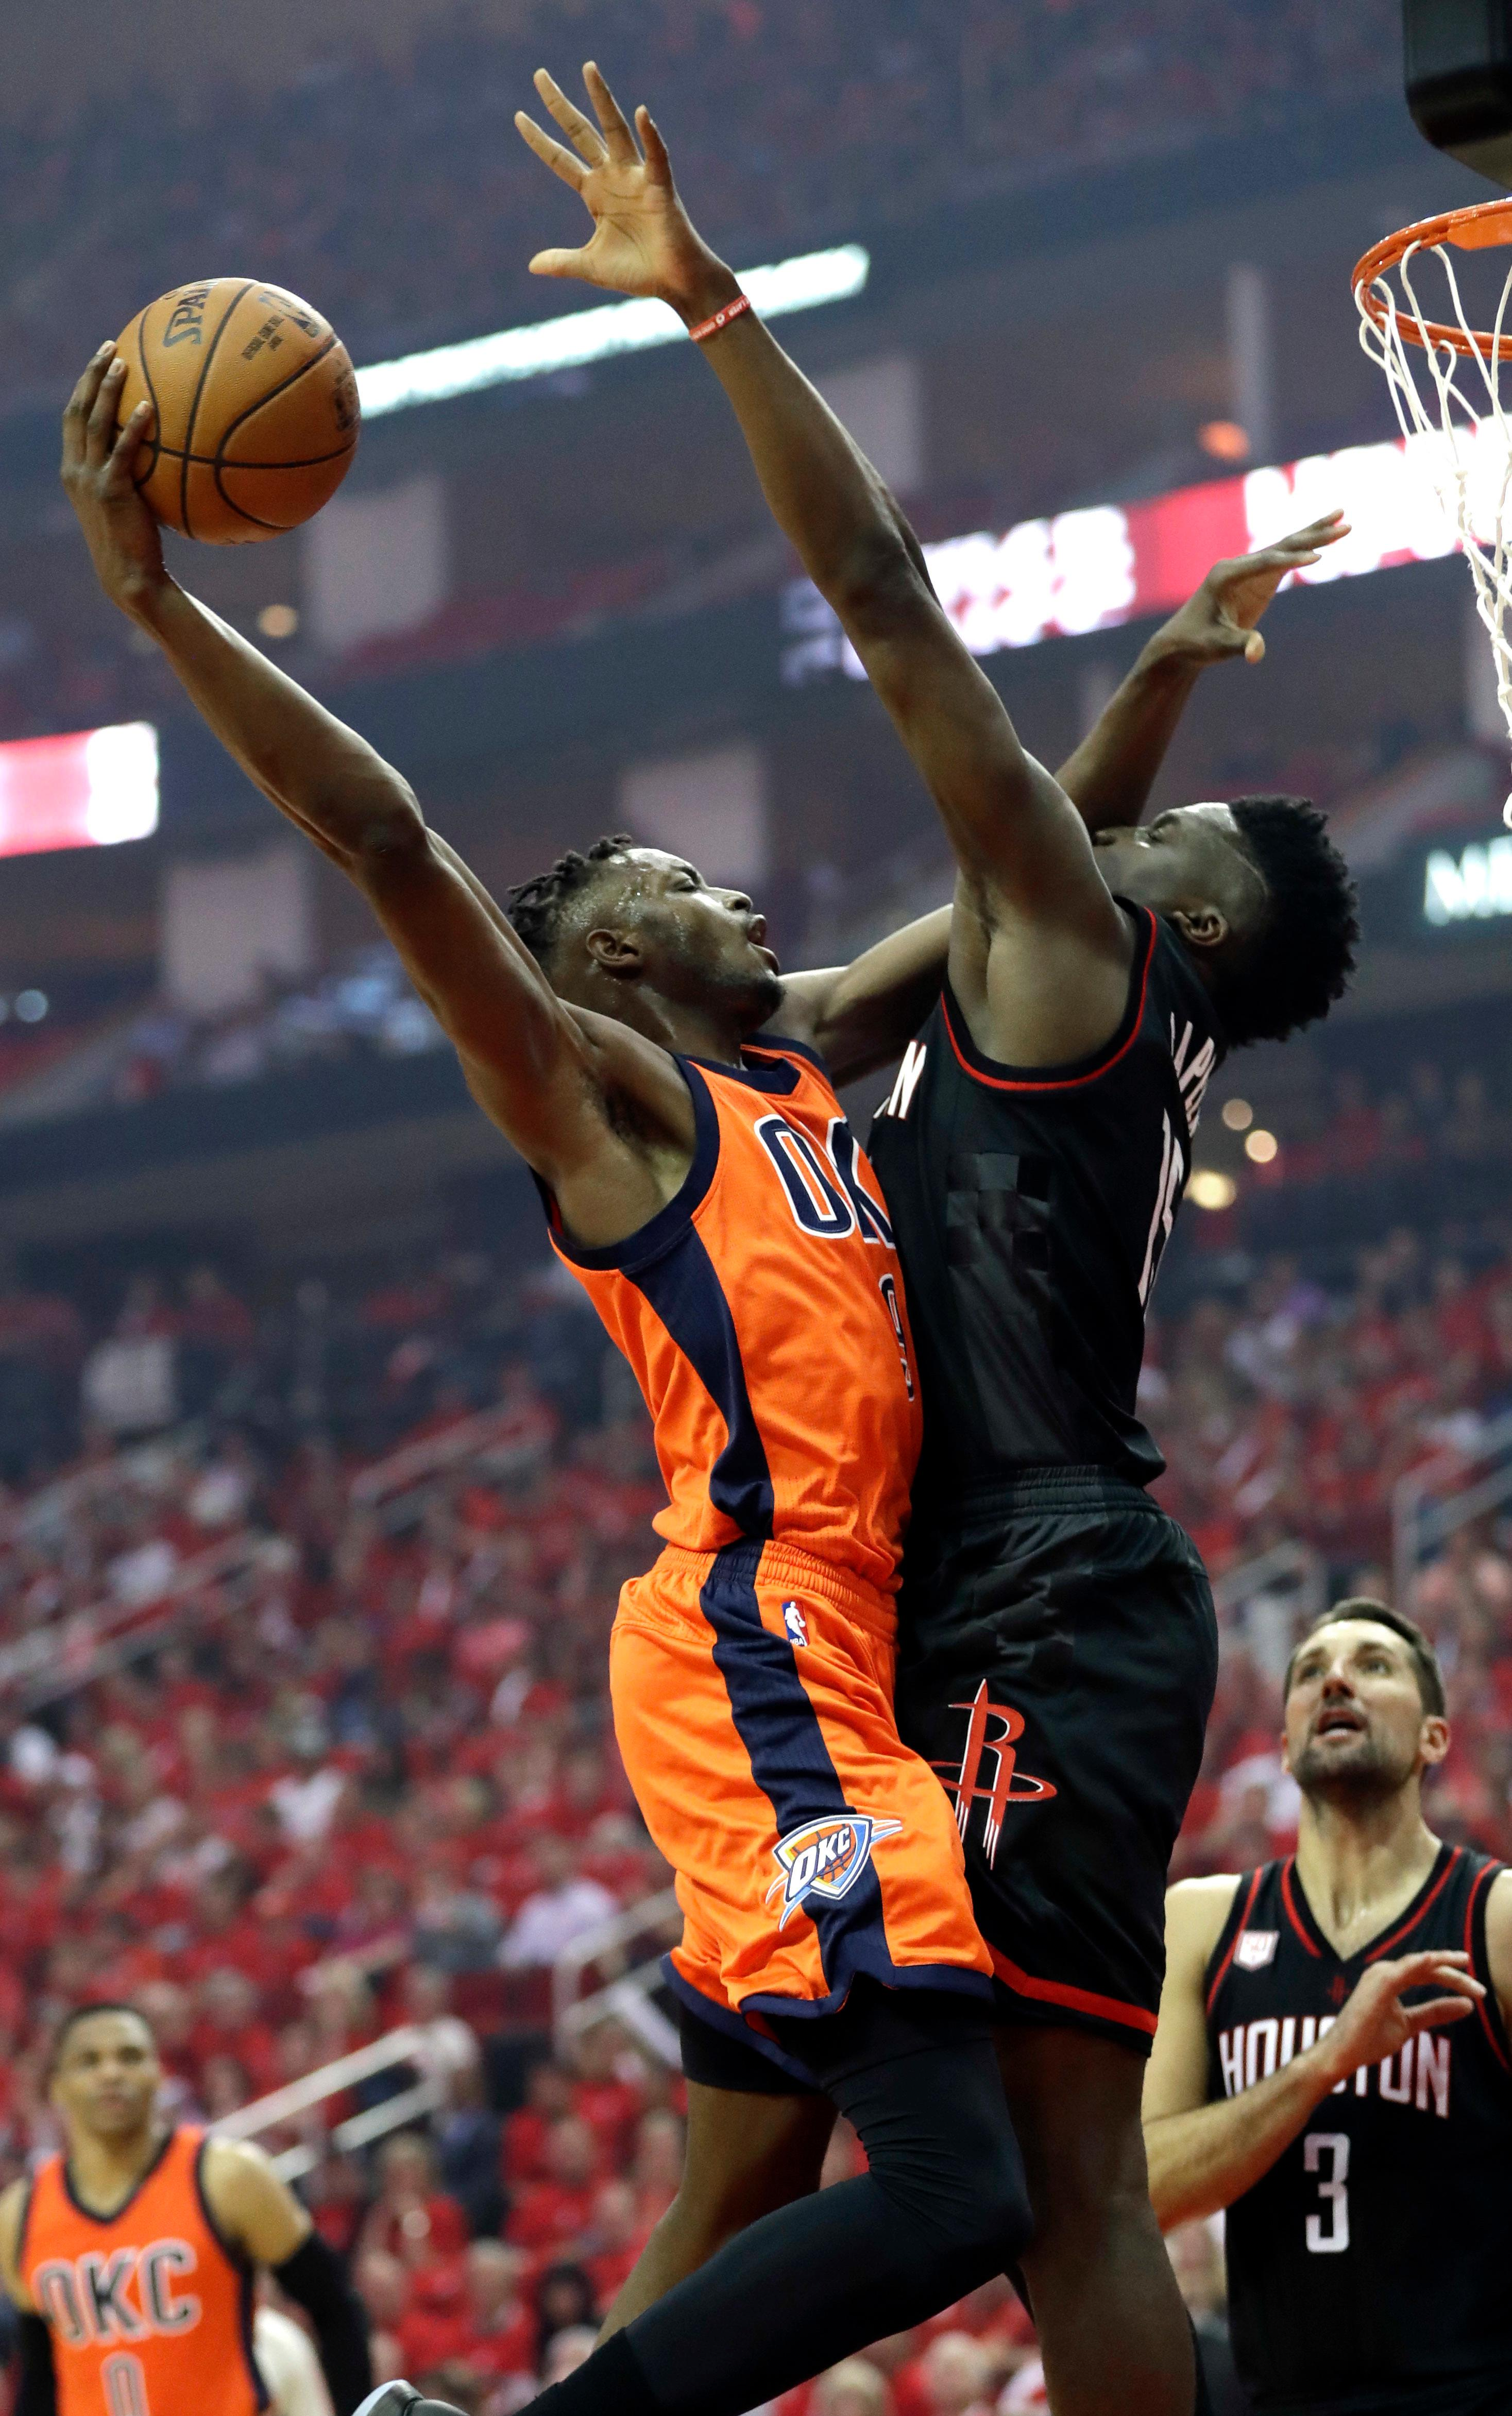 Oklahoma City Thunder's Jerami Grant, left, goes up for a shot as Houston Rockets' Clint Capela defends during the first half in Game 1 of an NBA basketball first-round playoff series, Sunday, April 16, 2017, in Houston. (AP Photo/David J. Phillip)